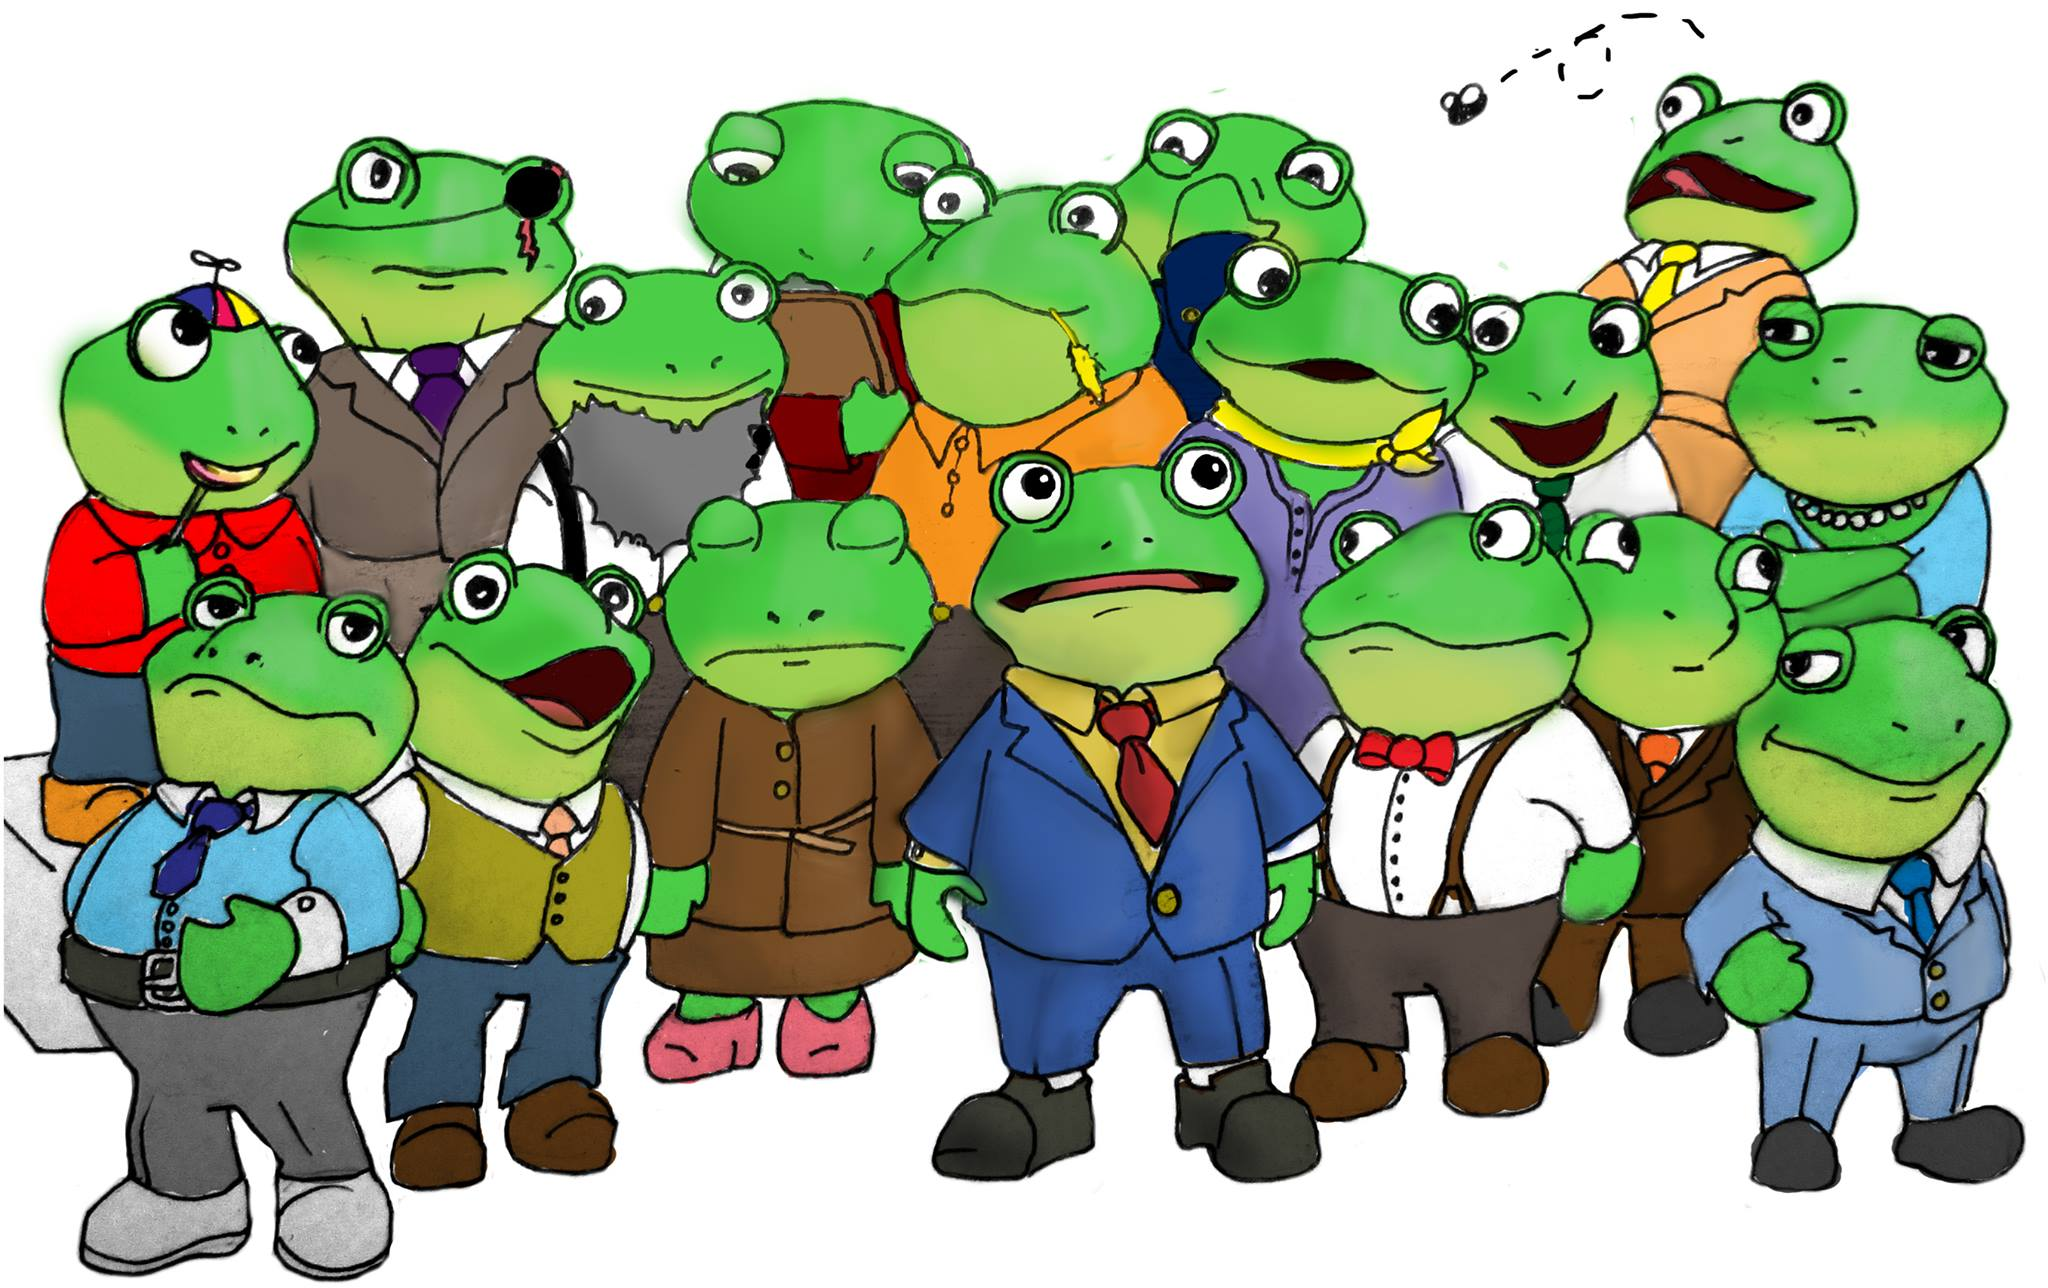 Former Governor Slippy Toad poses with his extended family (Art by Liz Drybread-Matheny)